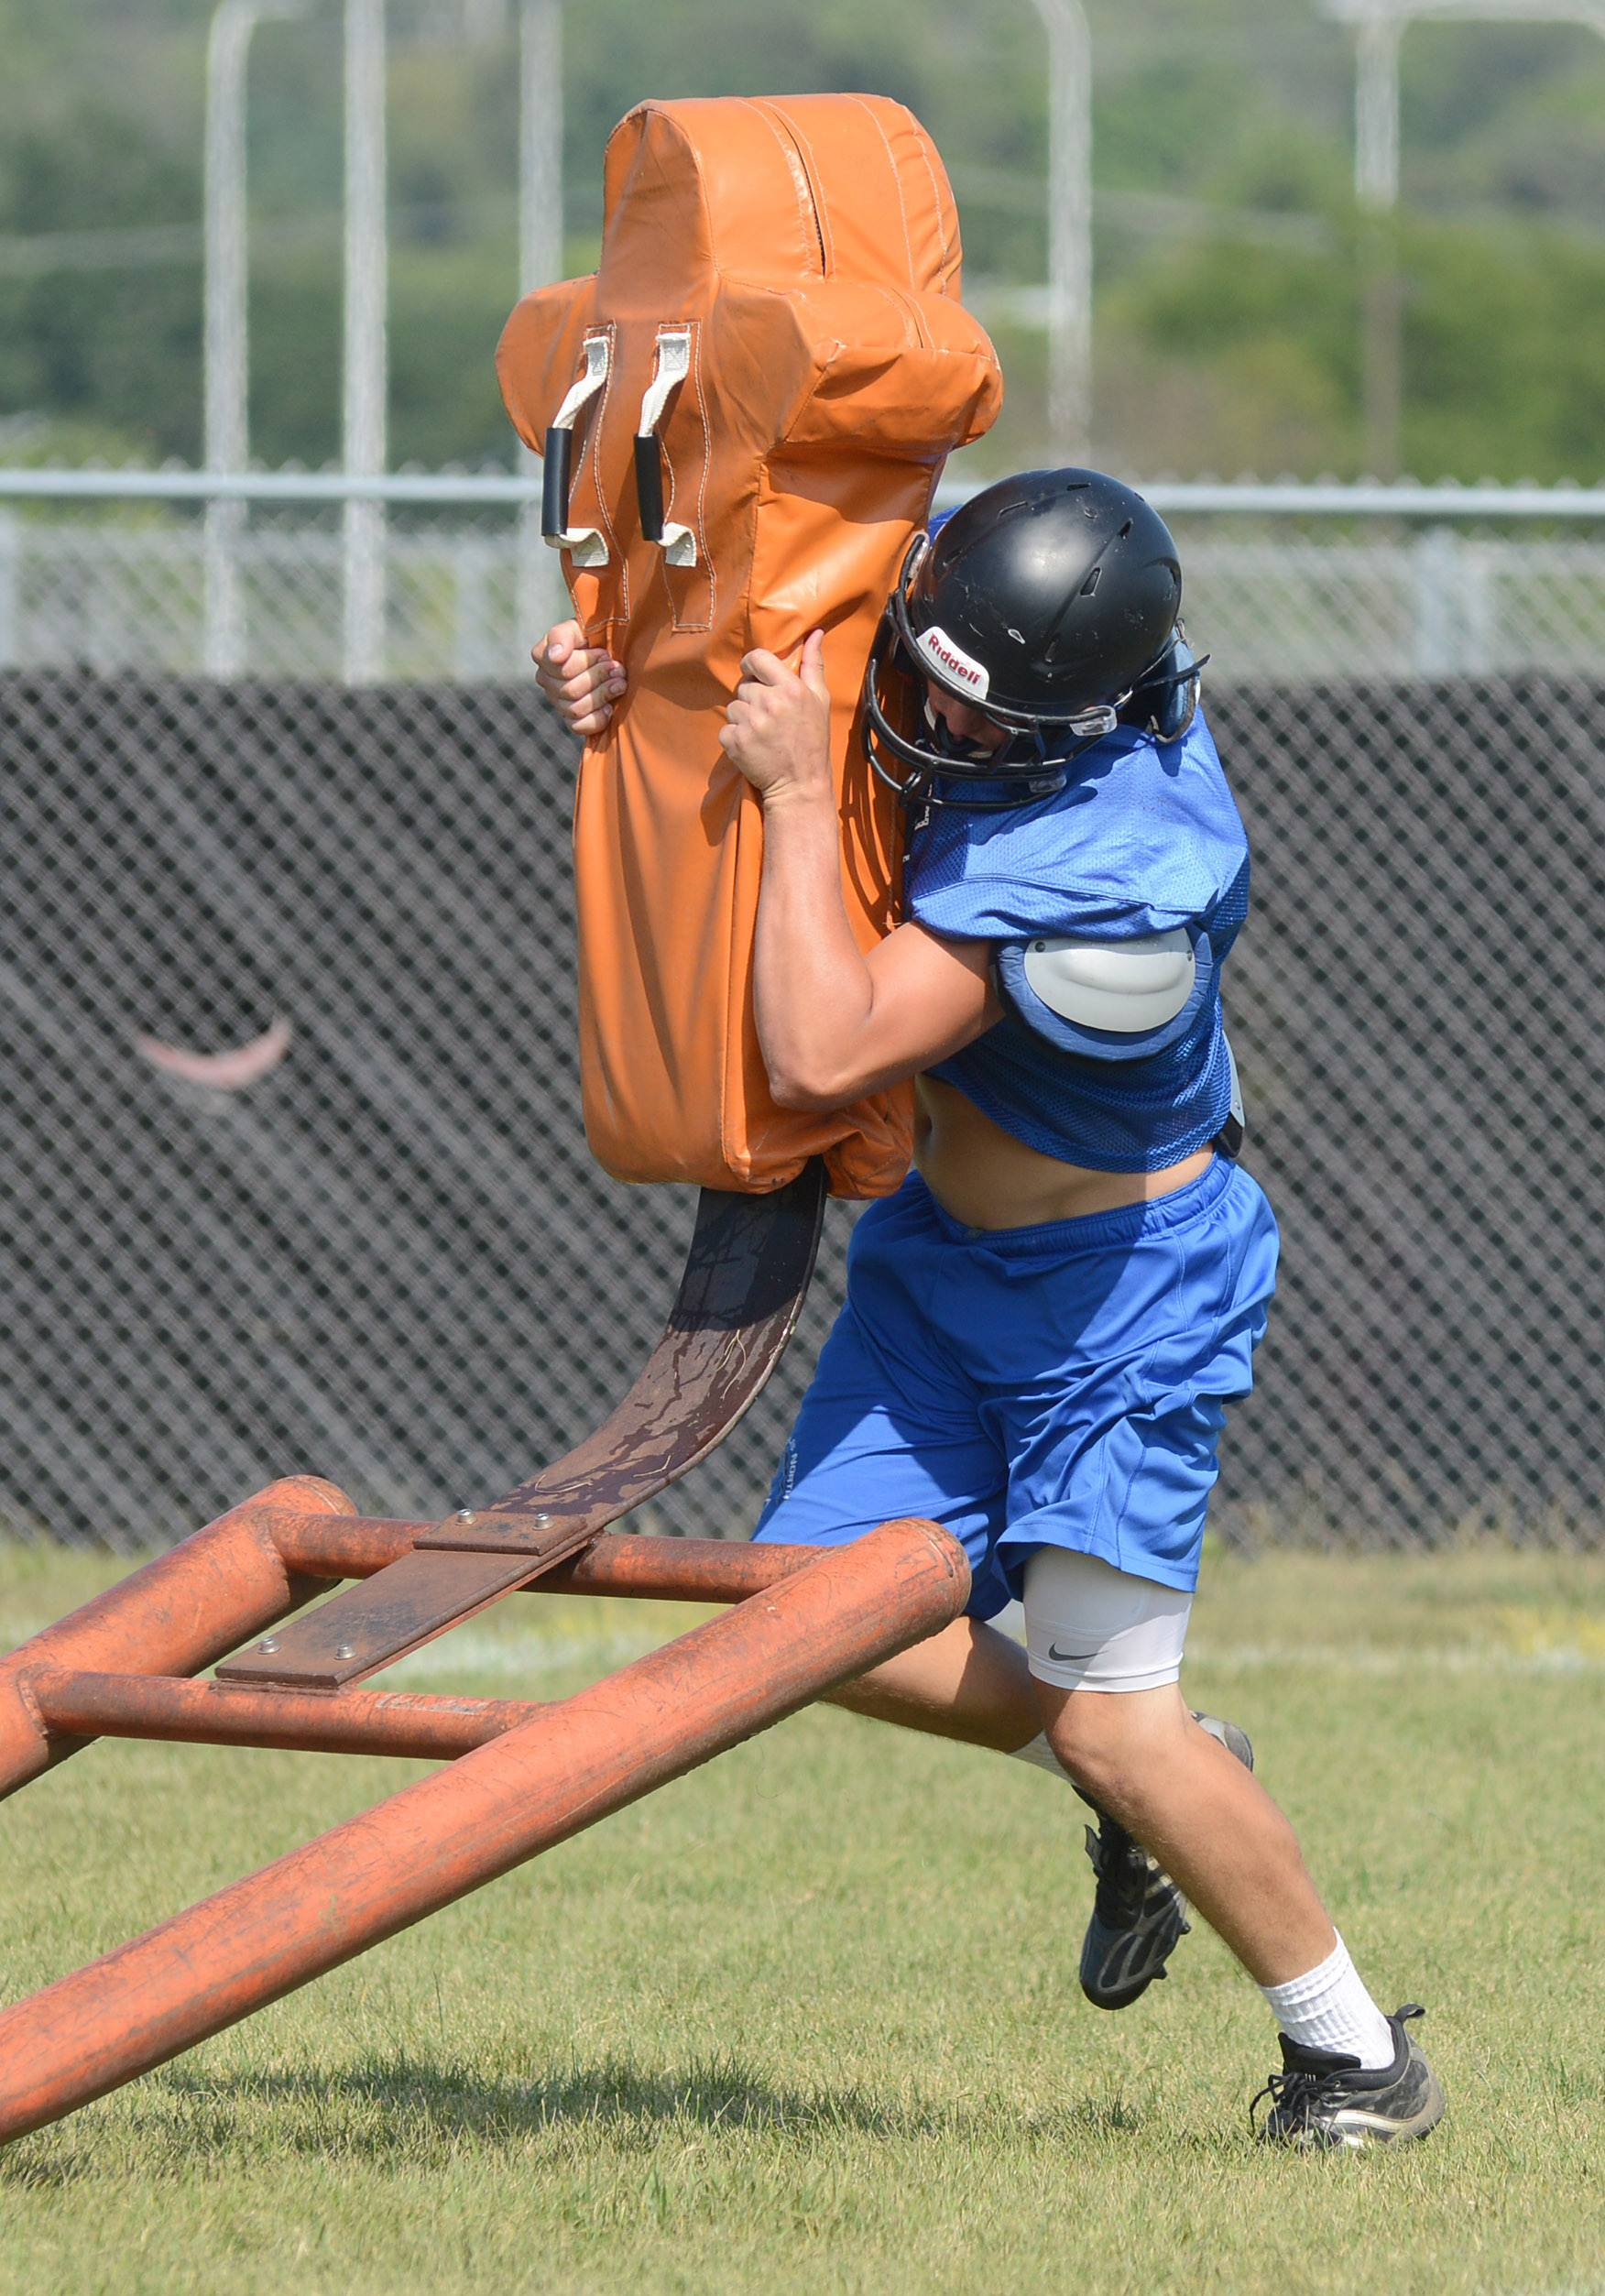 St. Charles North senior Carson Schmitt hits the sled during football practice.